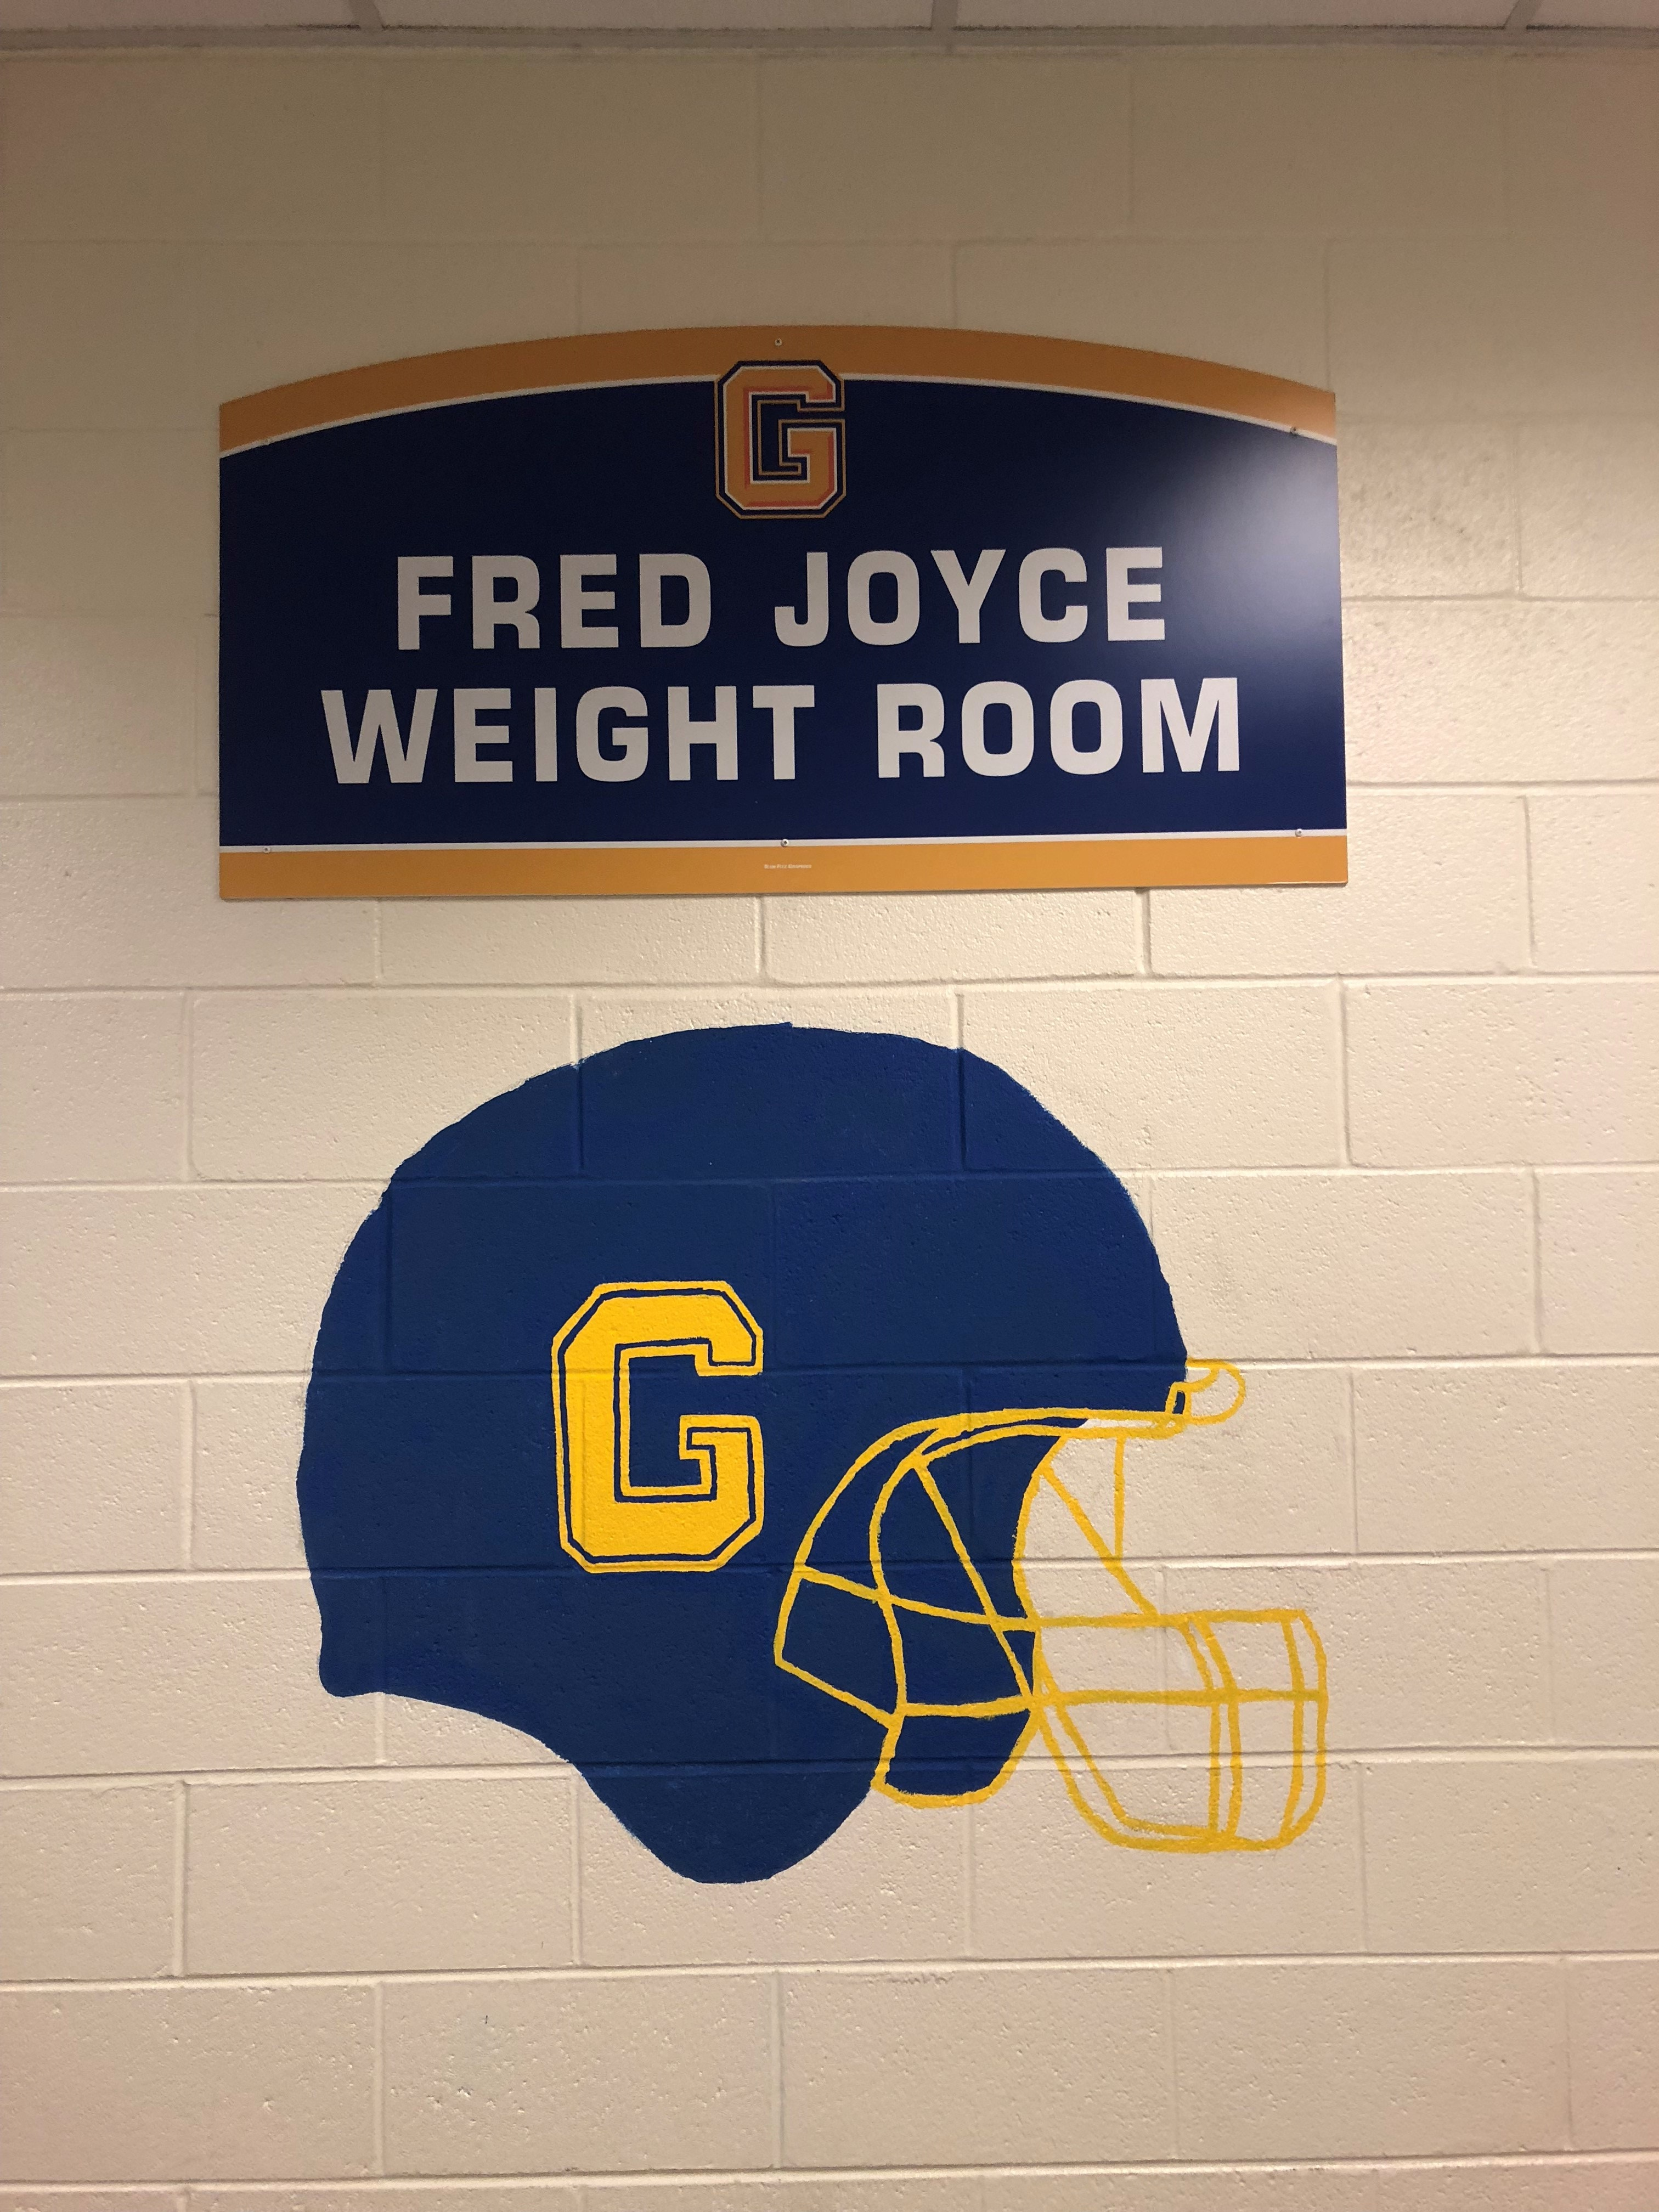 Fred Joyce Weight Room